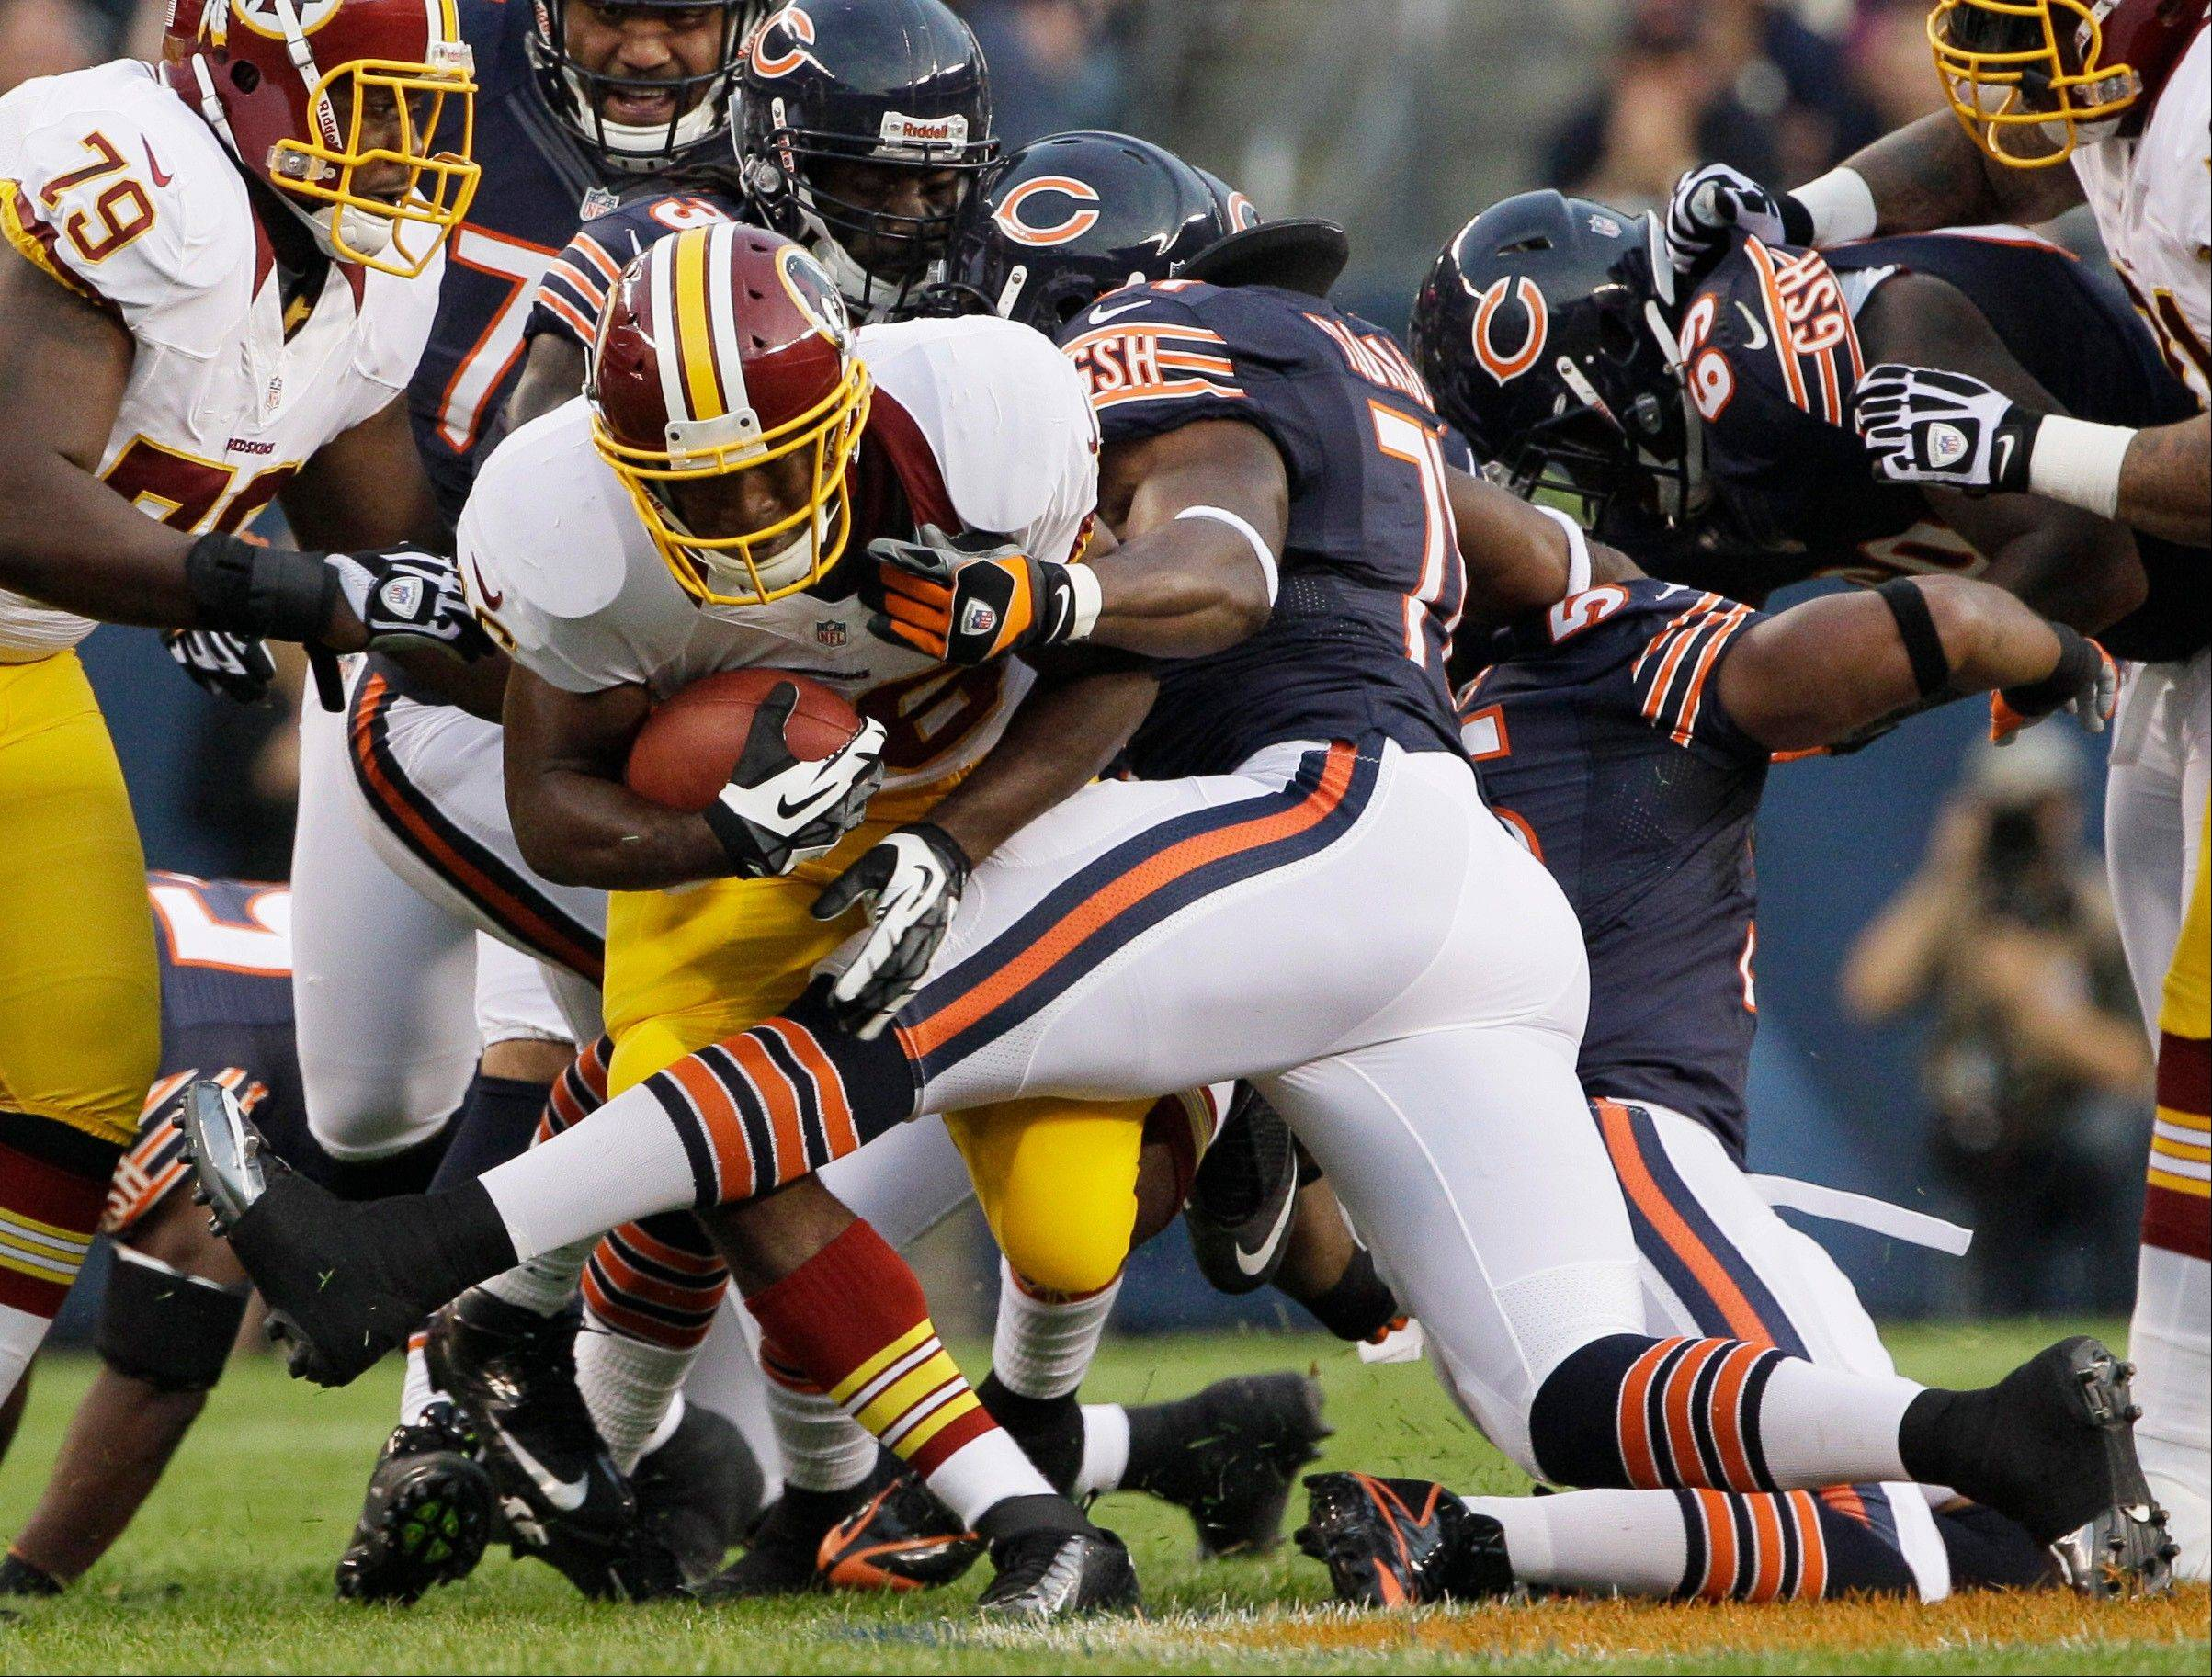 Washington Redskins running back Alfred Morris is tackled by Bears defensive end Israel Idonije Saturday during the first half at Soldier Field.